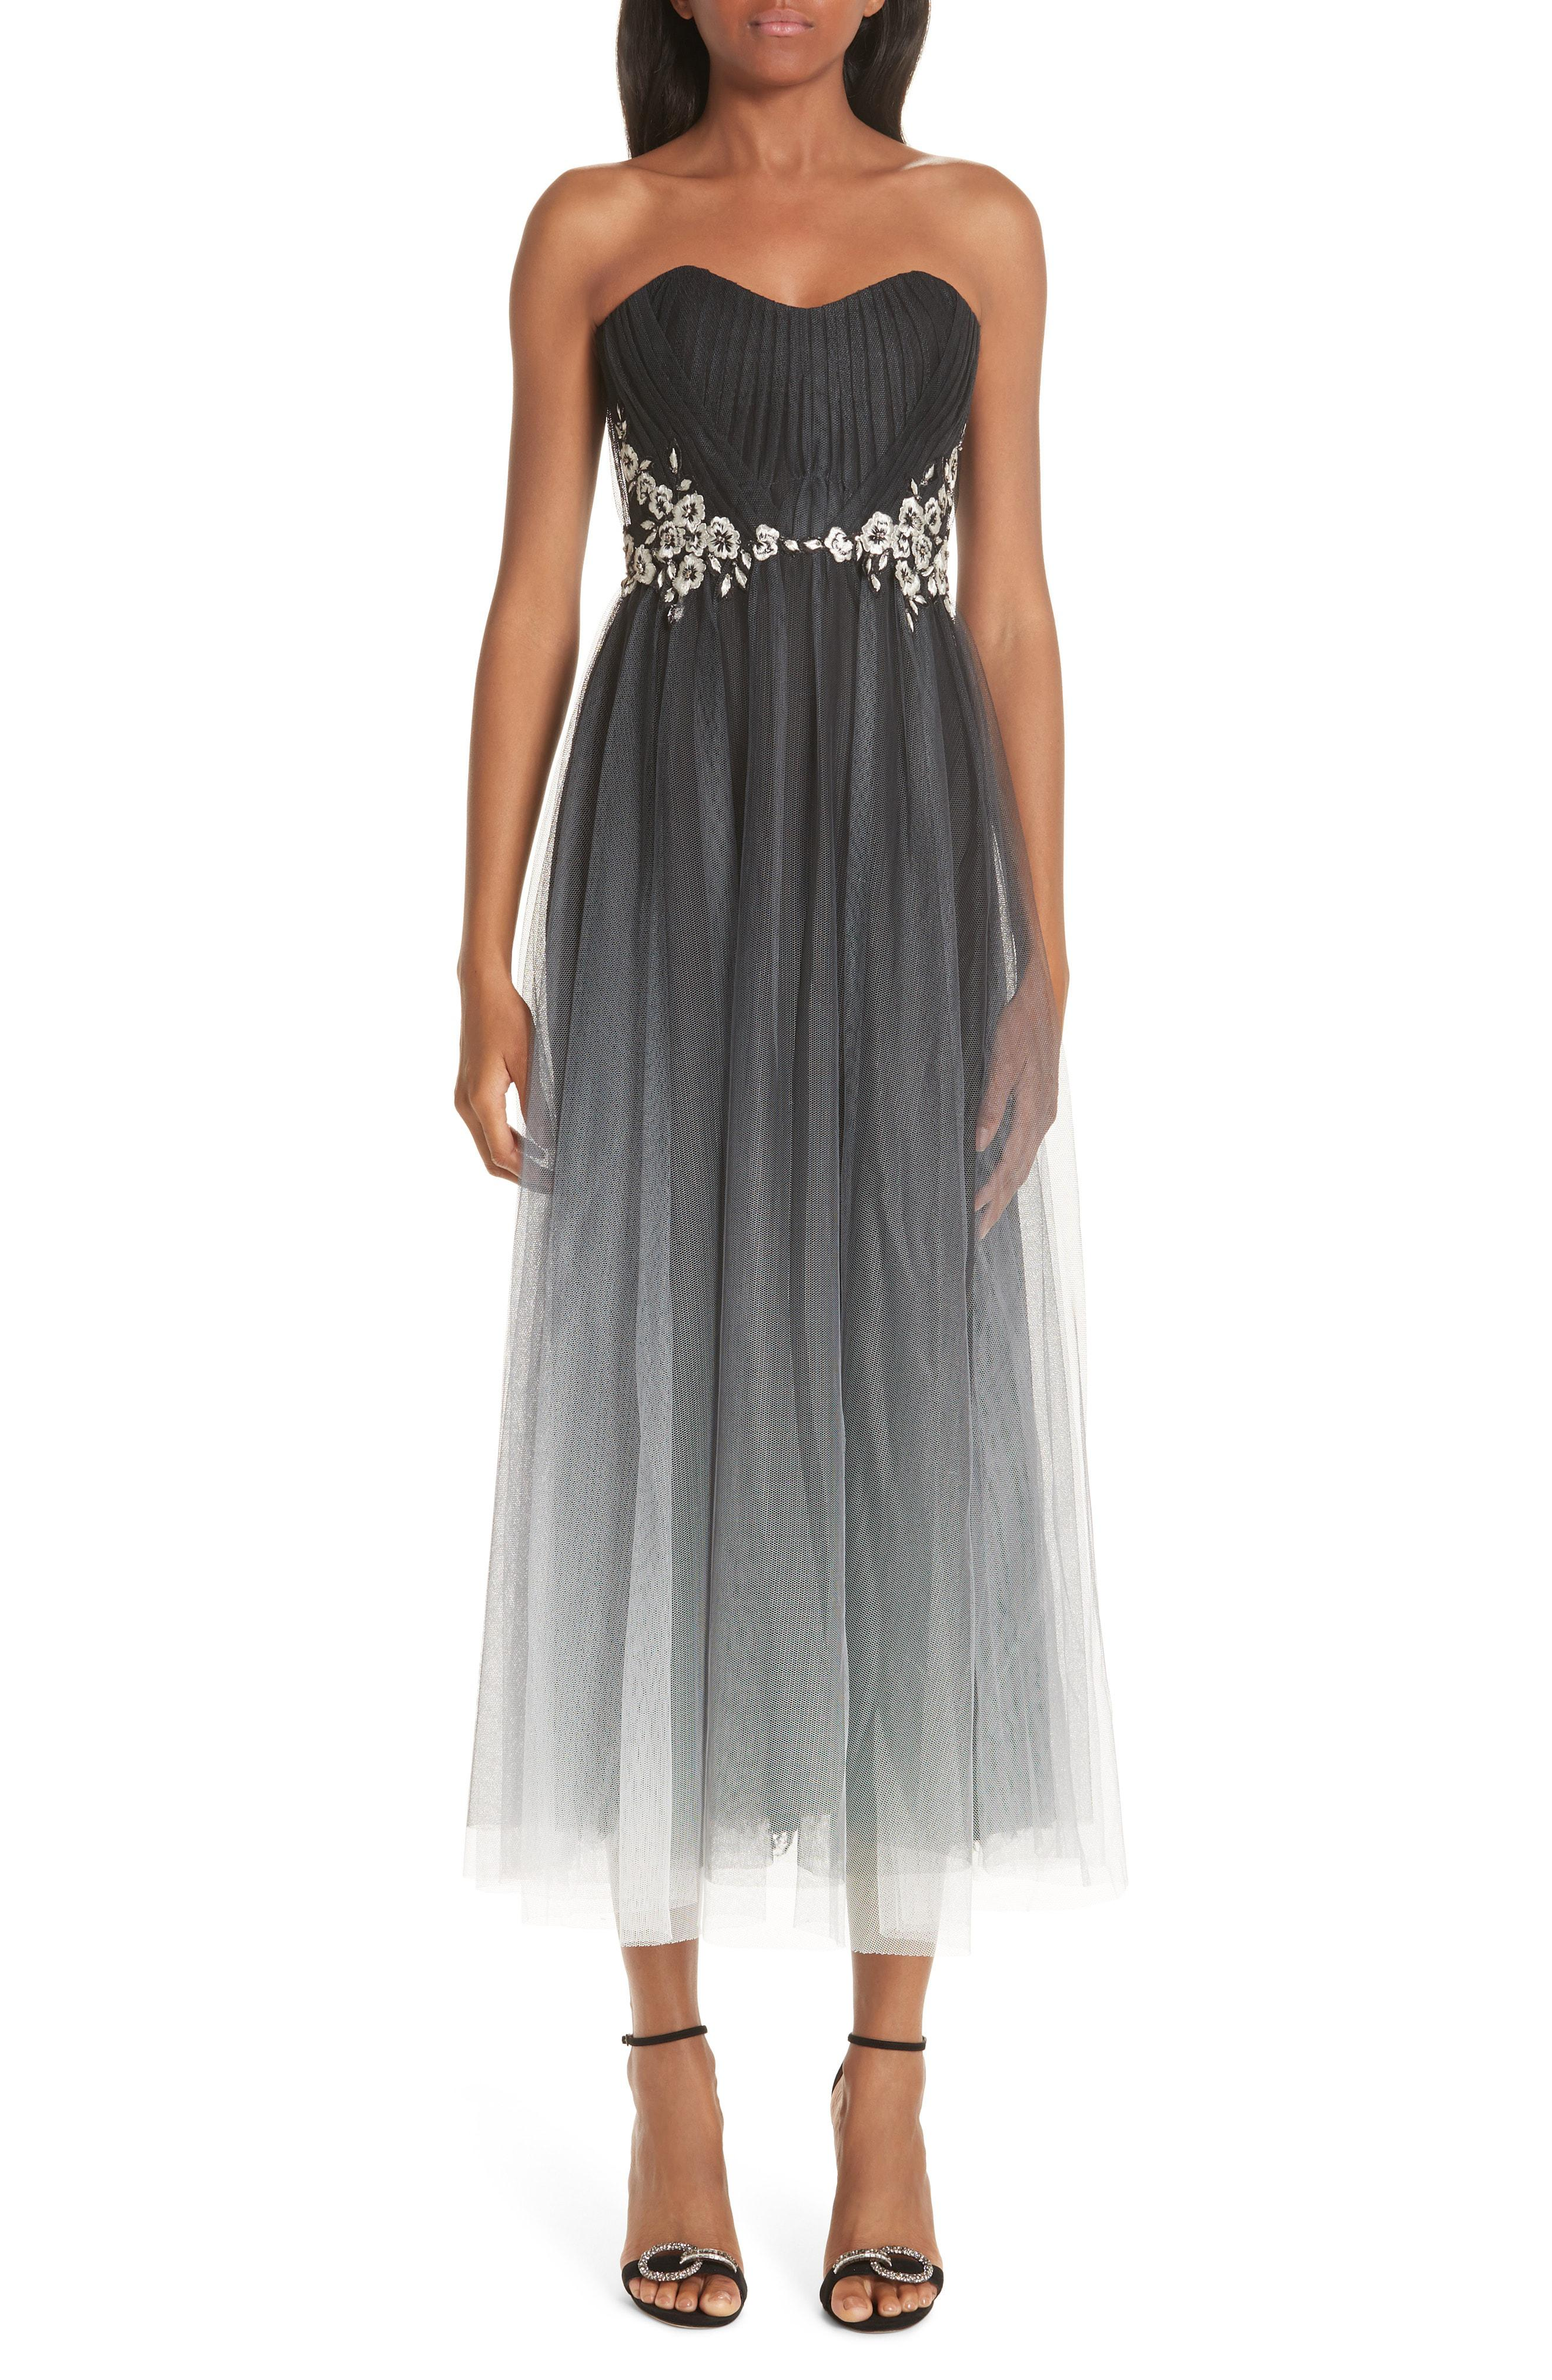 b5eb913f Marchesa notte. Women's Gray Strapless Ombre Tulle Tea Length Dress. $995  $746 From Nordstrom